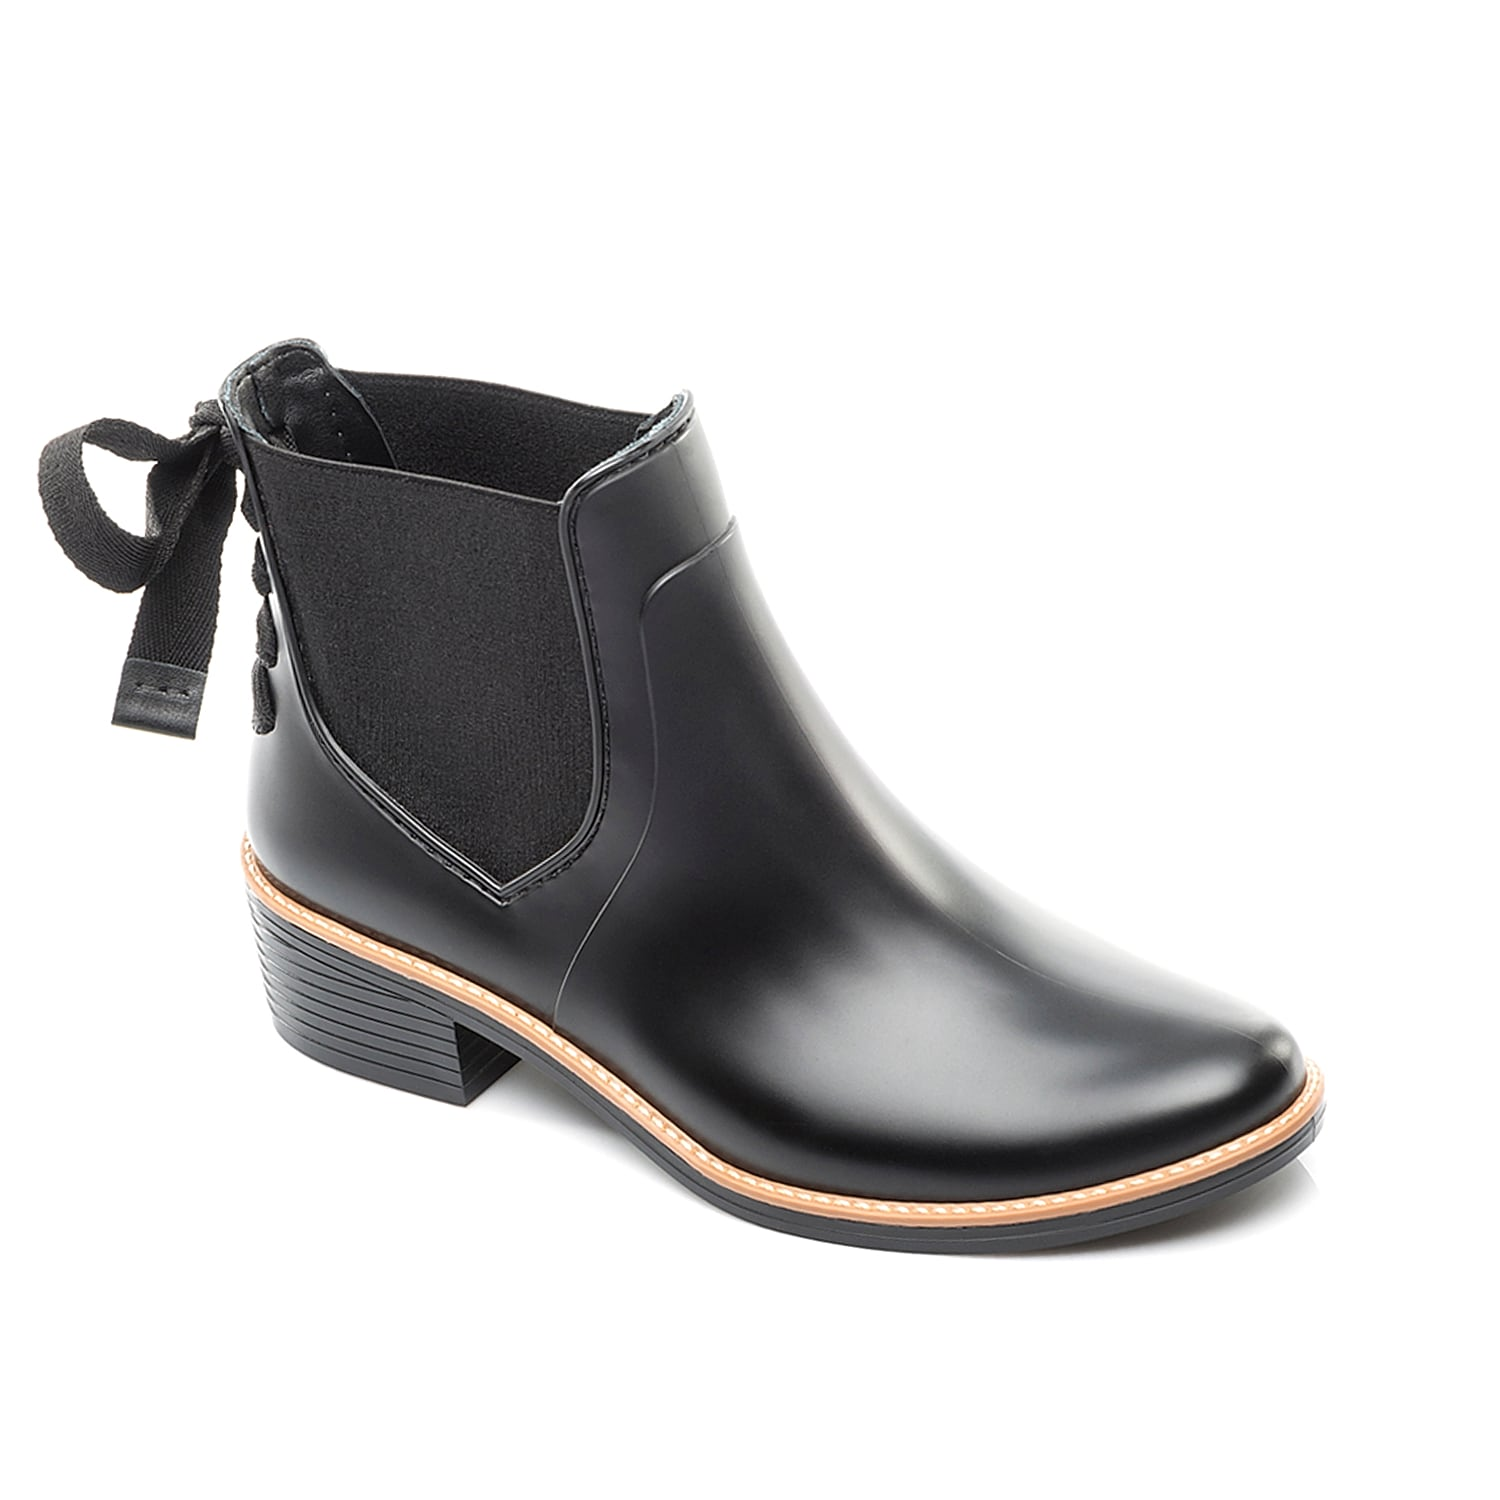 A lace-up bow gives the Bernardo Paxton rain booties a feminine design! These waterproof ankle boots are perfect for strutting through sidewalk puddles without compromising trend-right style. Click here for Boot Measuring Guide.